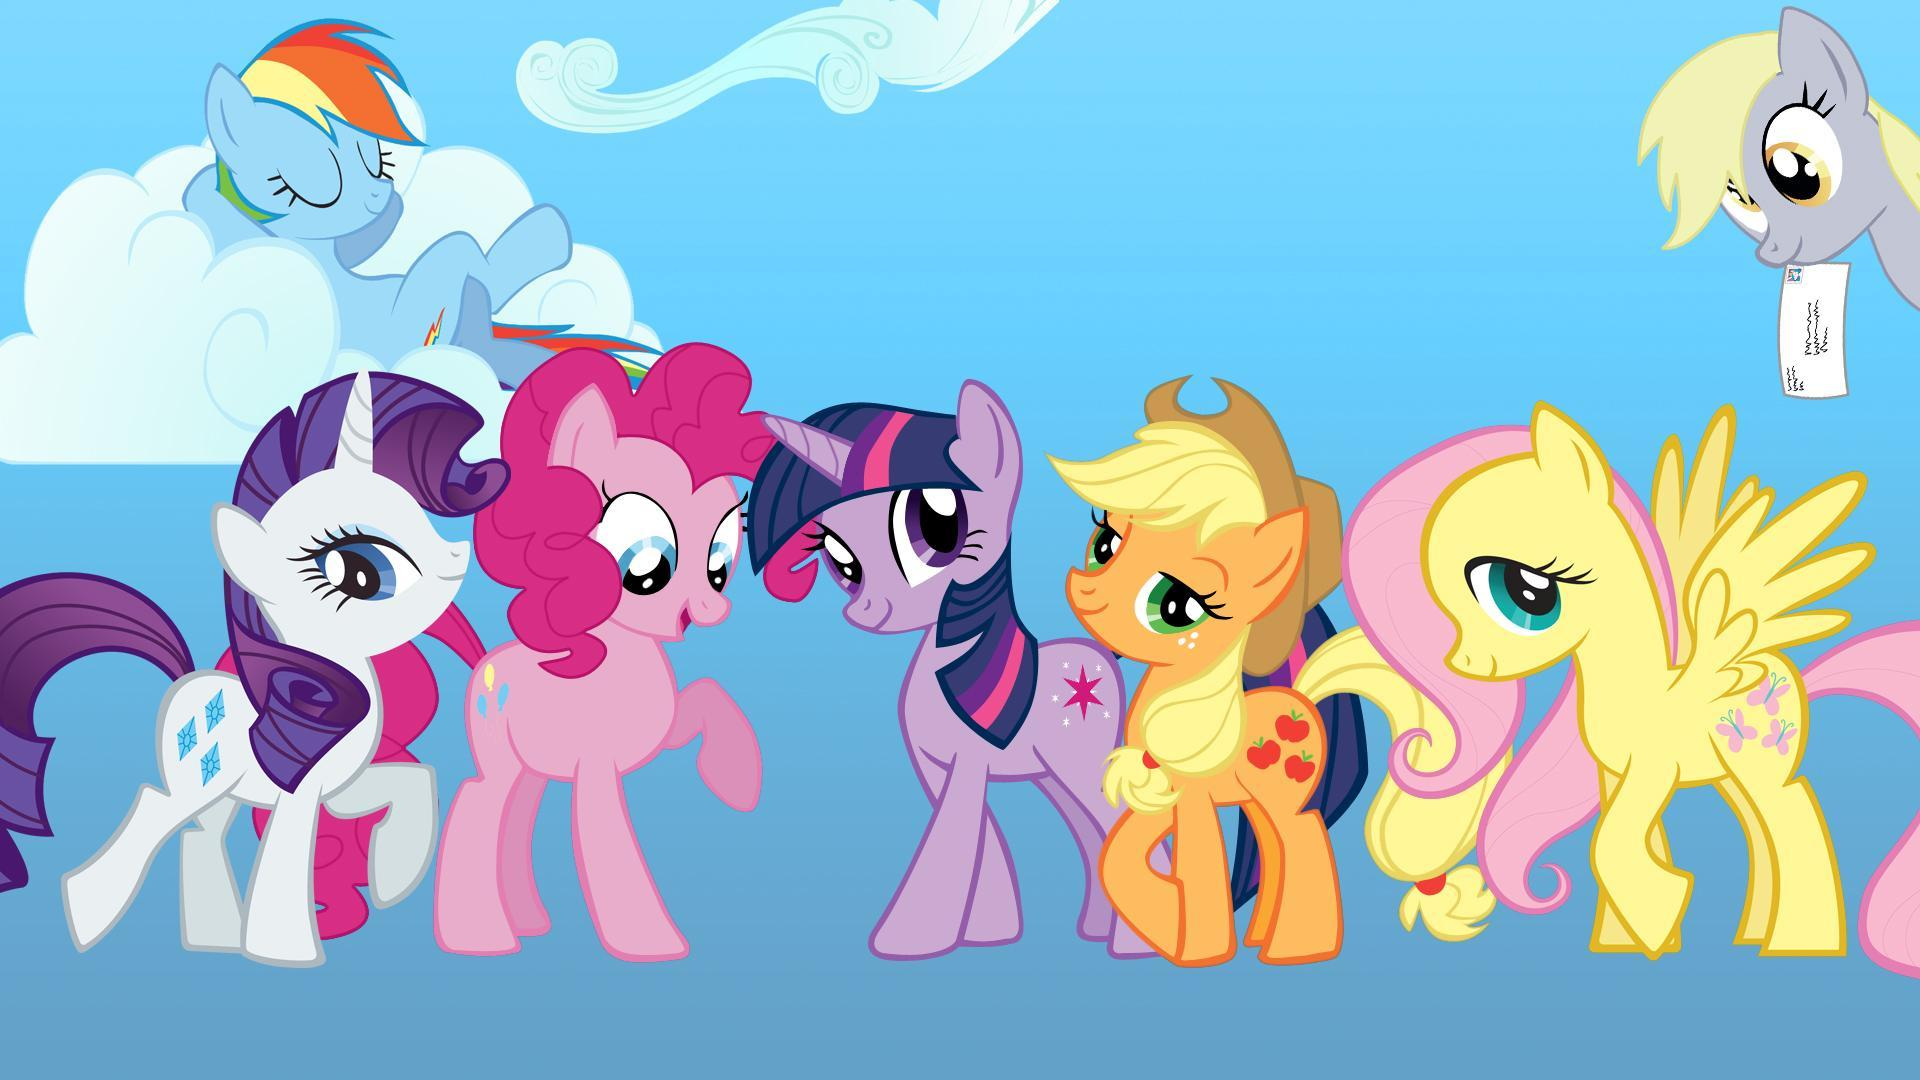 who is your favorite pony?